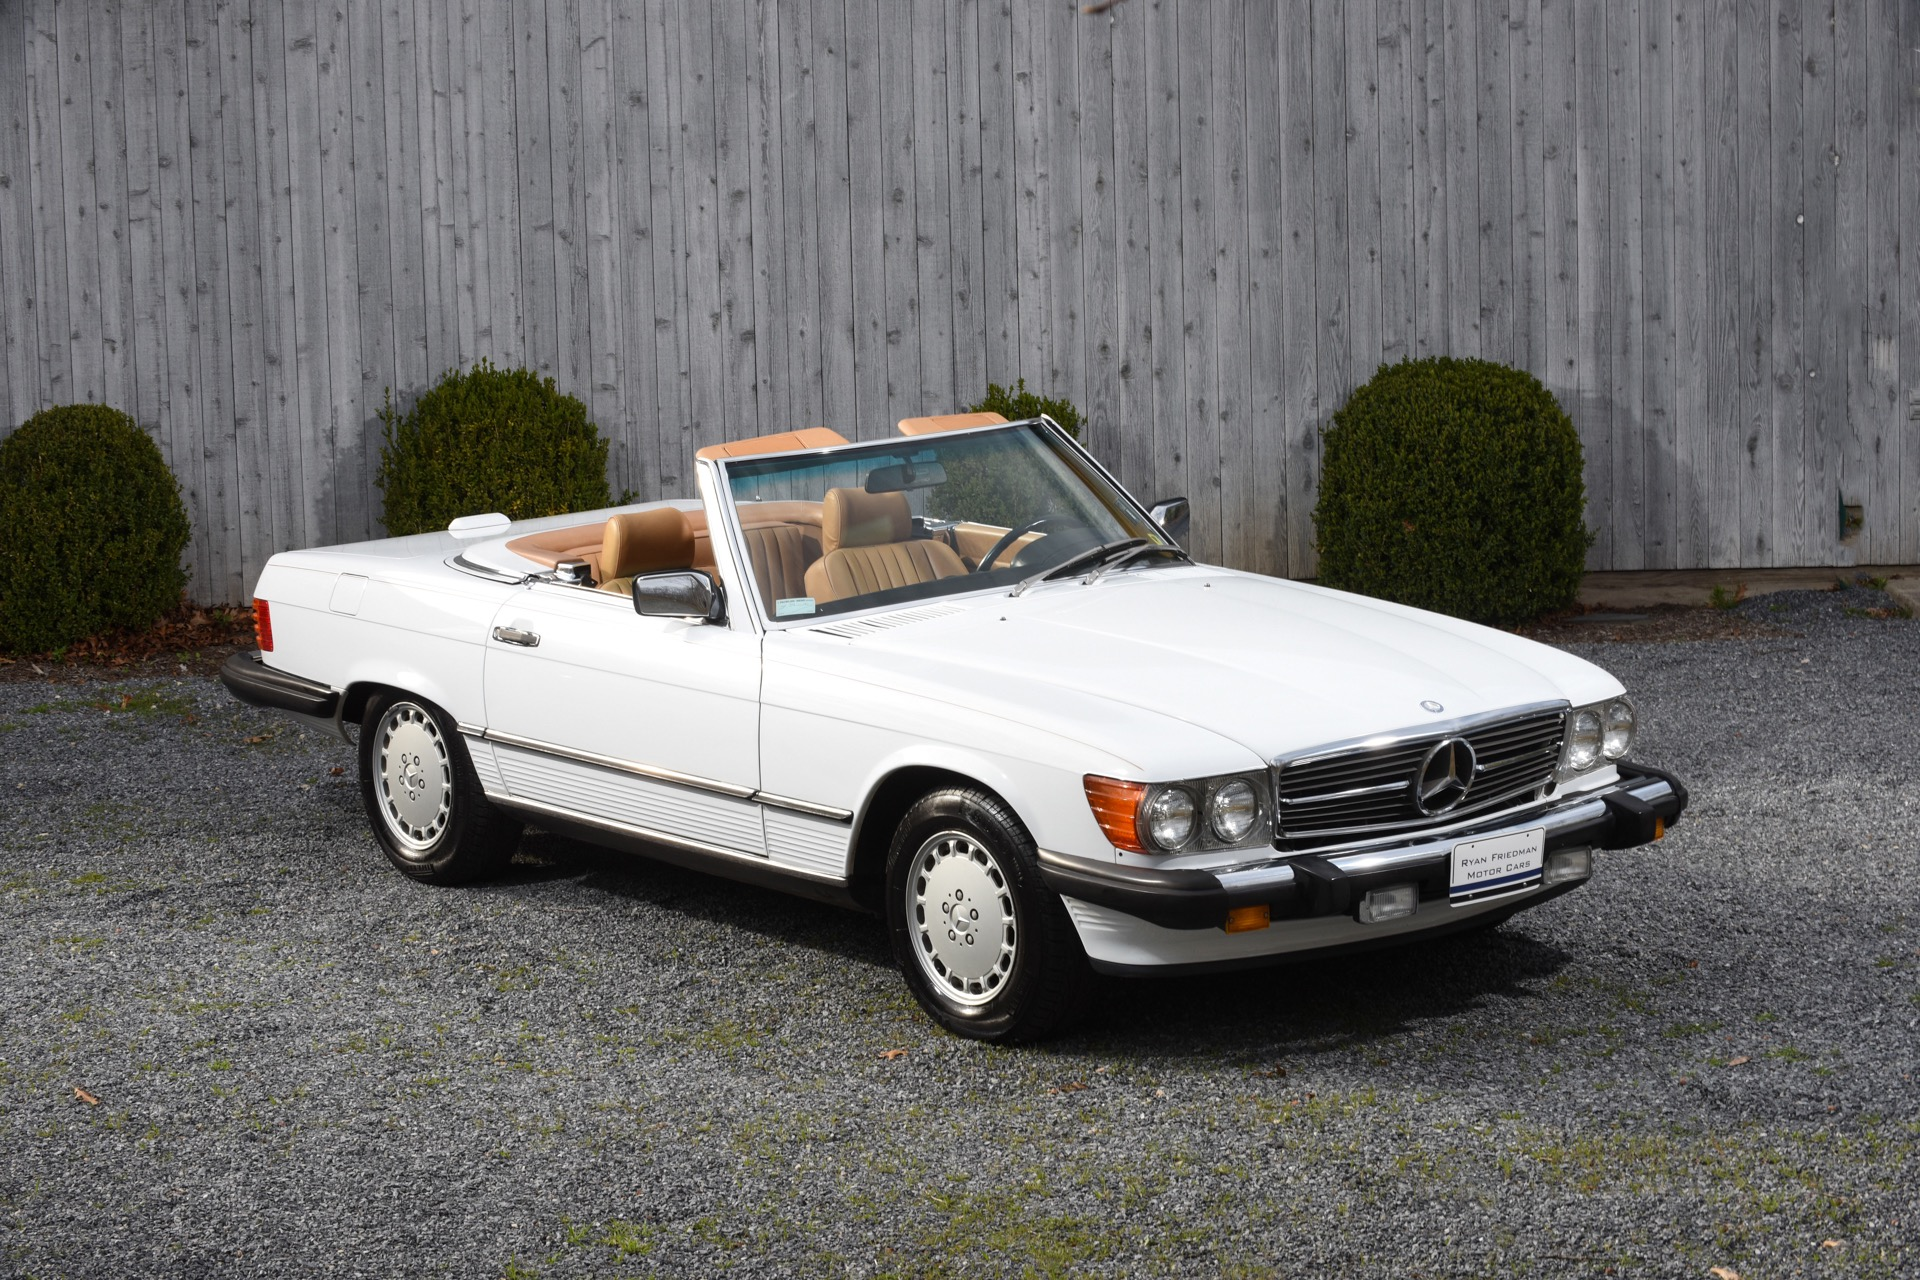 1989 mercedes-benz 560 sl 560 sl stock # 10 for sale near valley